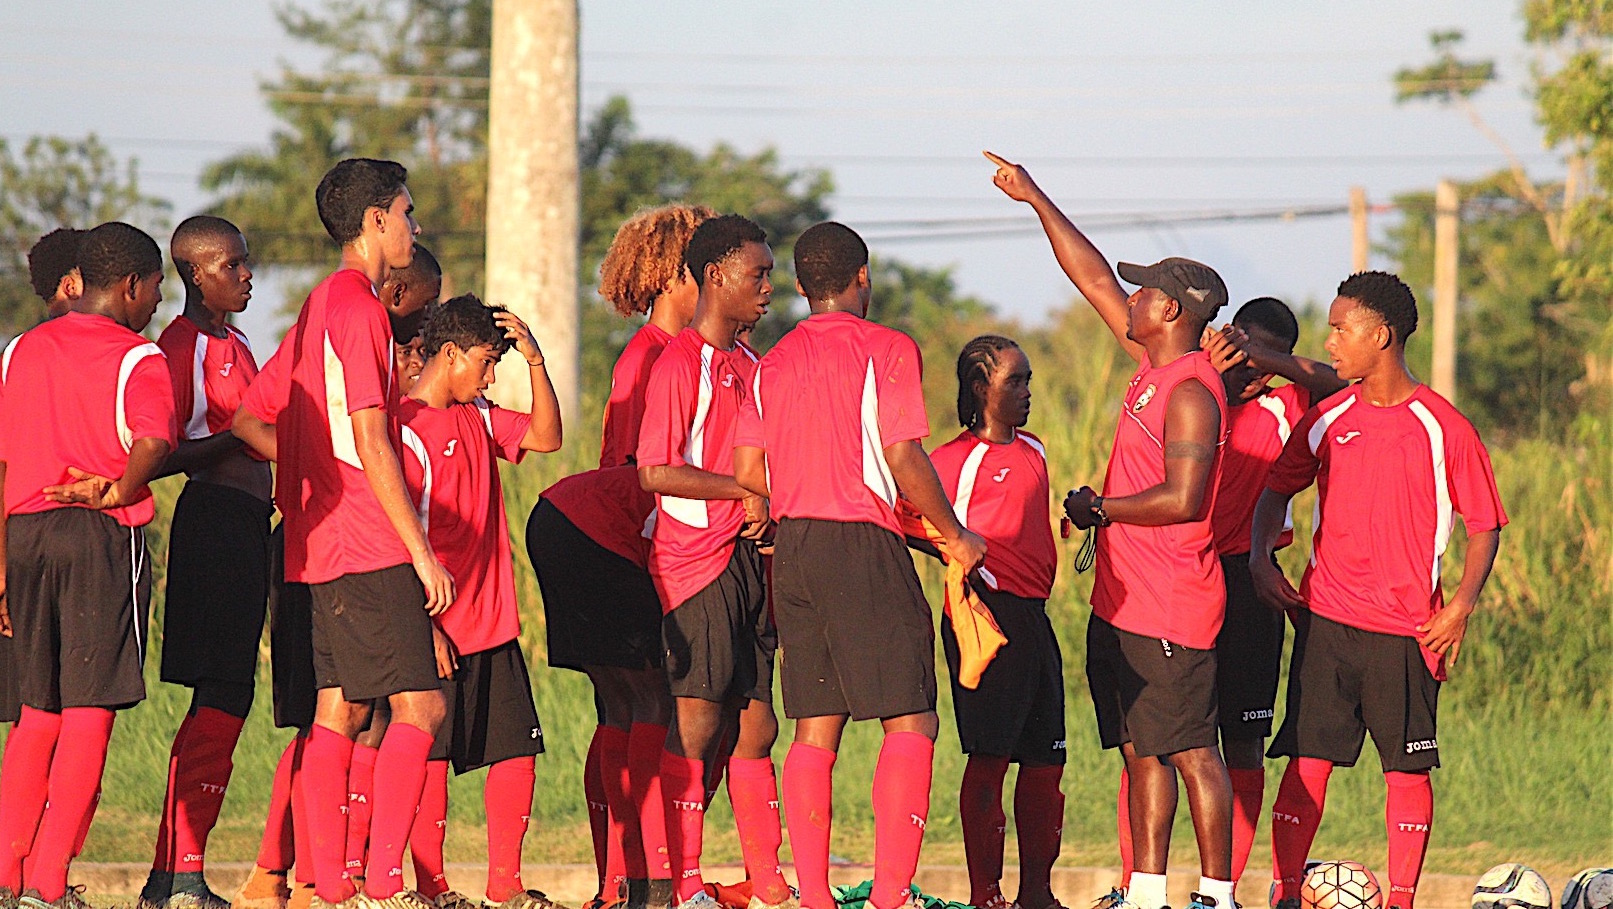 Latapy finalised U-15 Squad for Concacaf Championship.